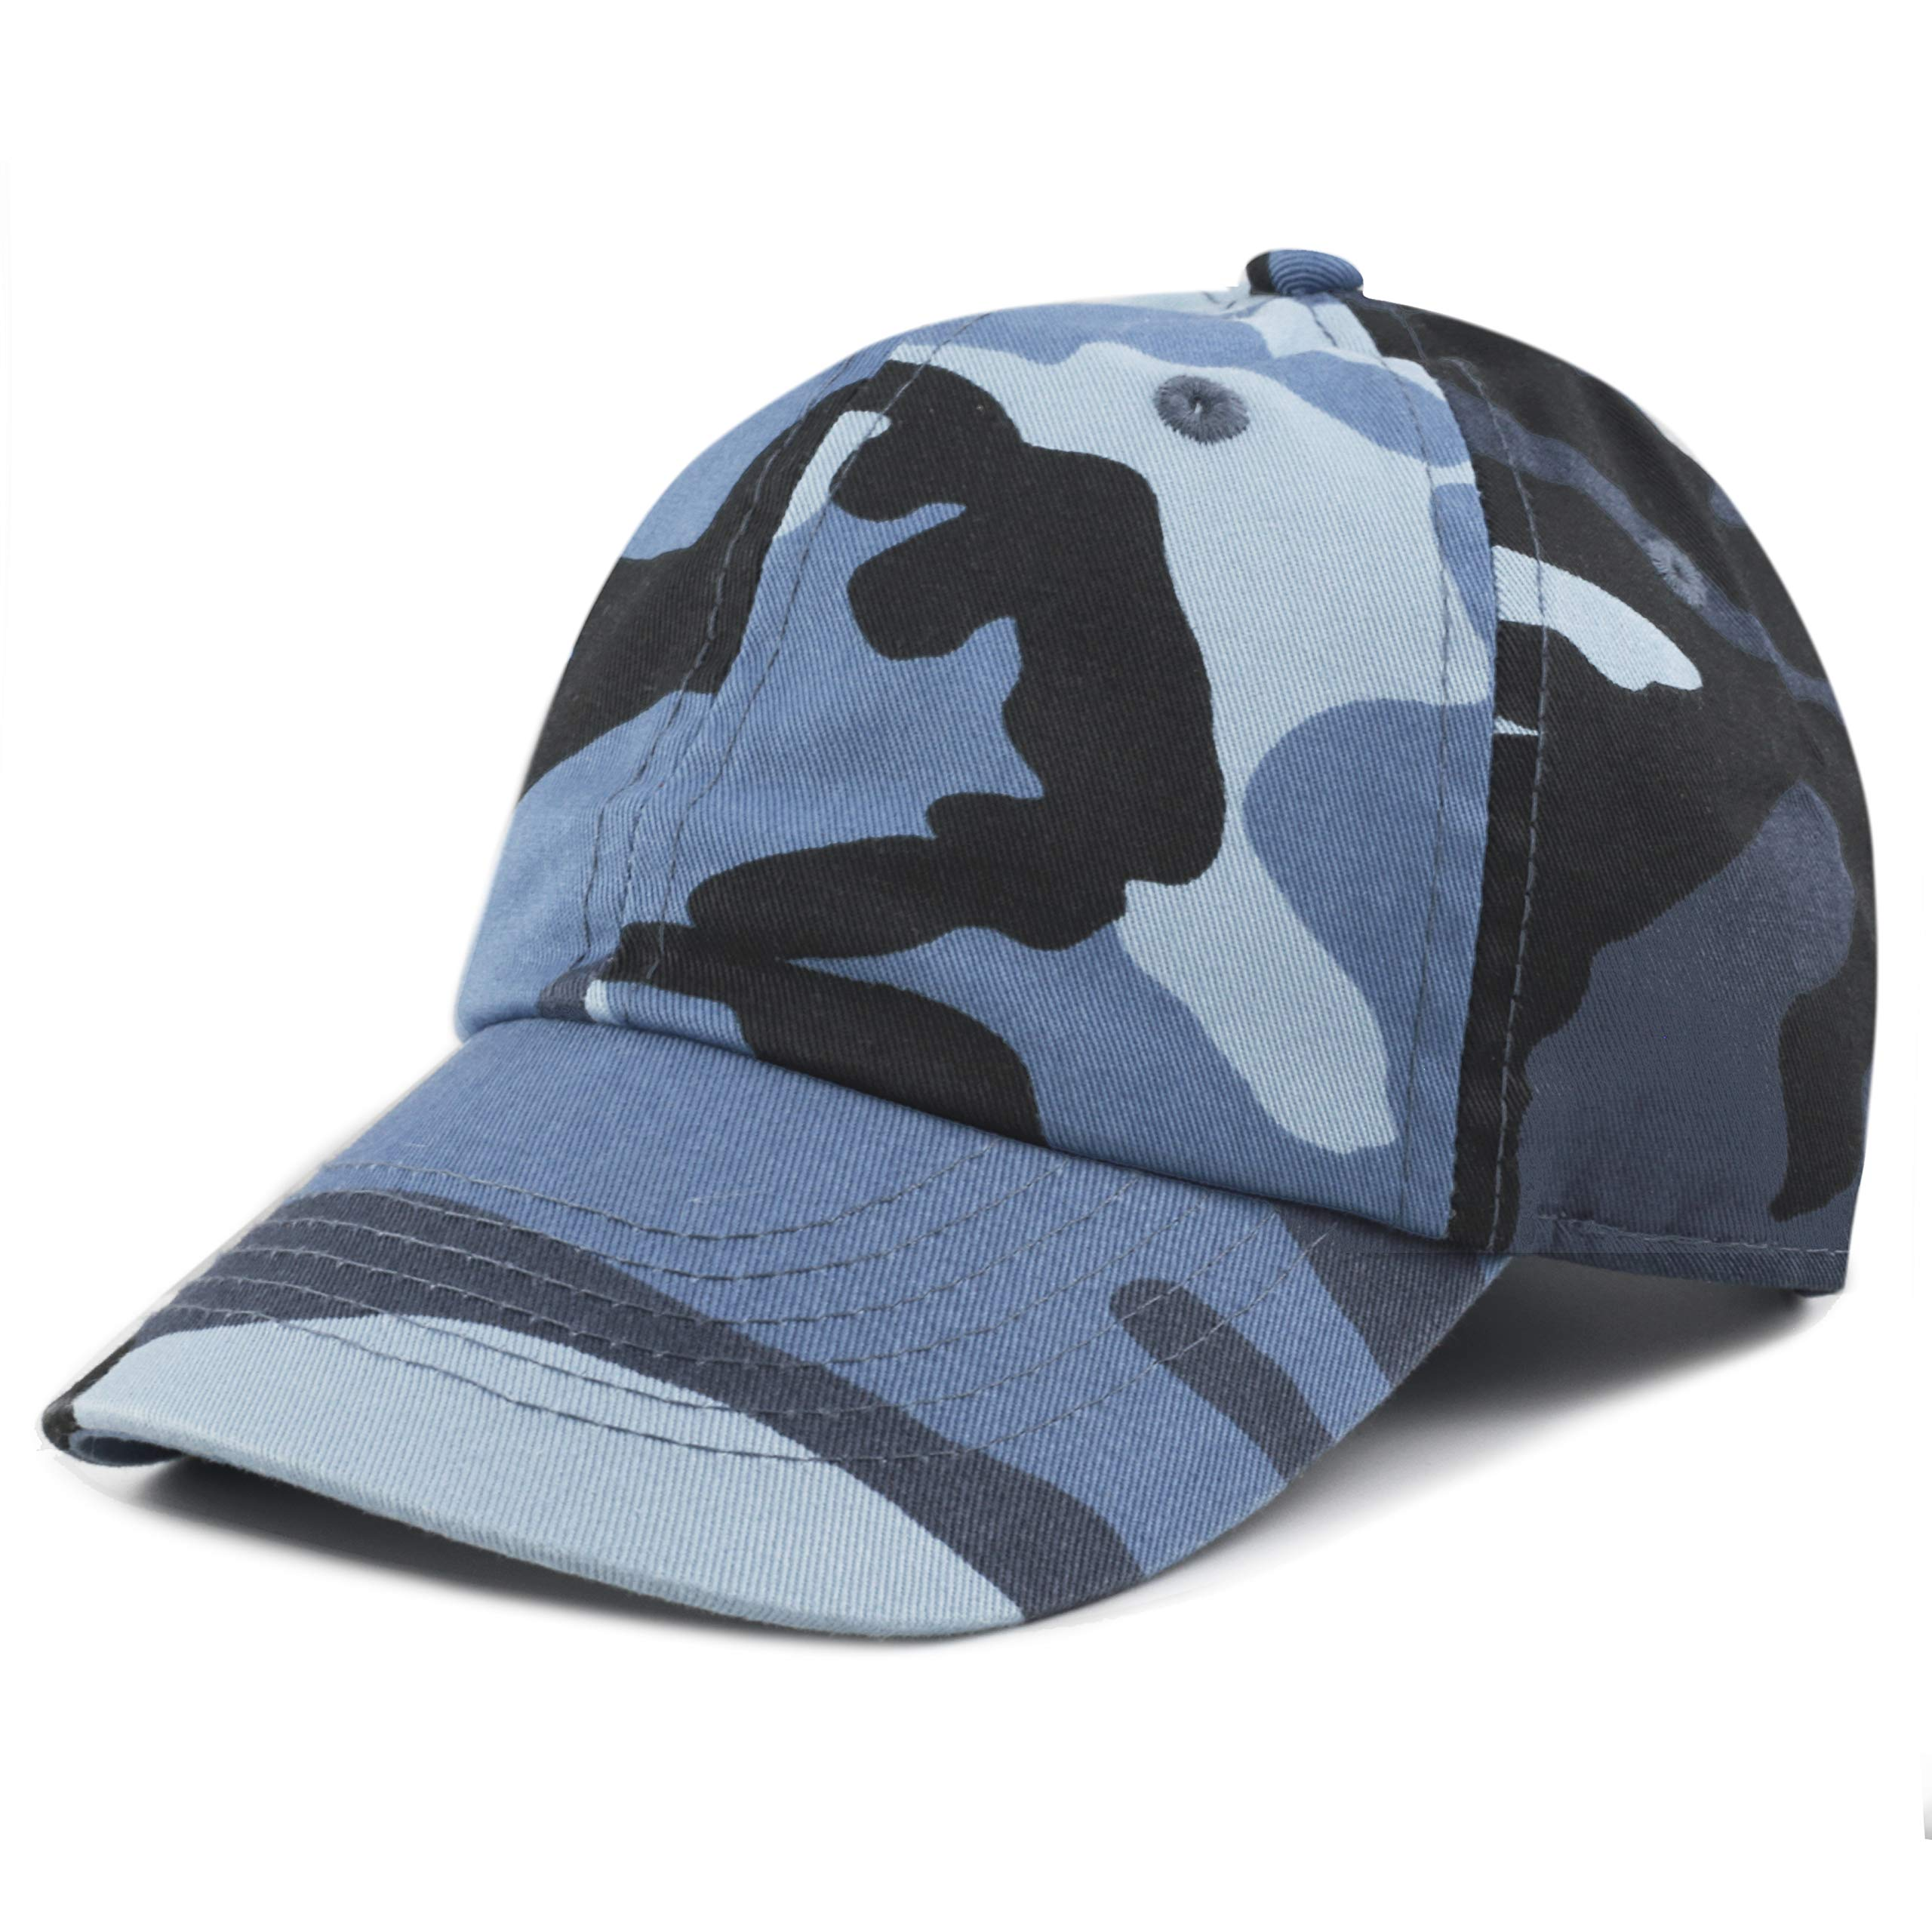 306f49f77f425 THE HAT DEPOT Kids Washed Low Profile Cotton and Denim Plain Baseball Cap  Hat product image